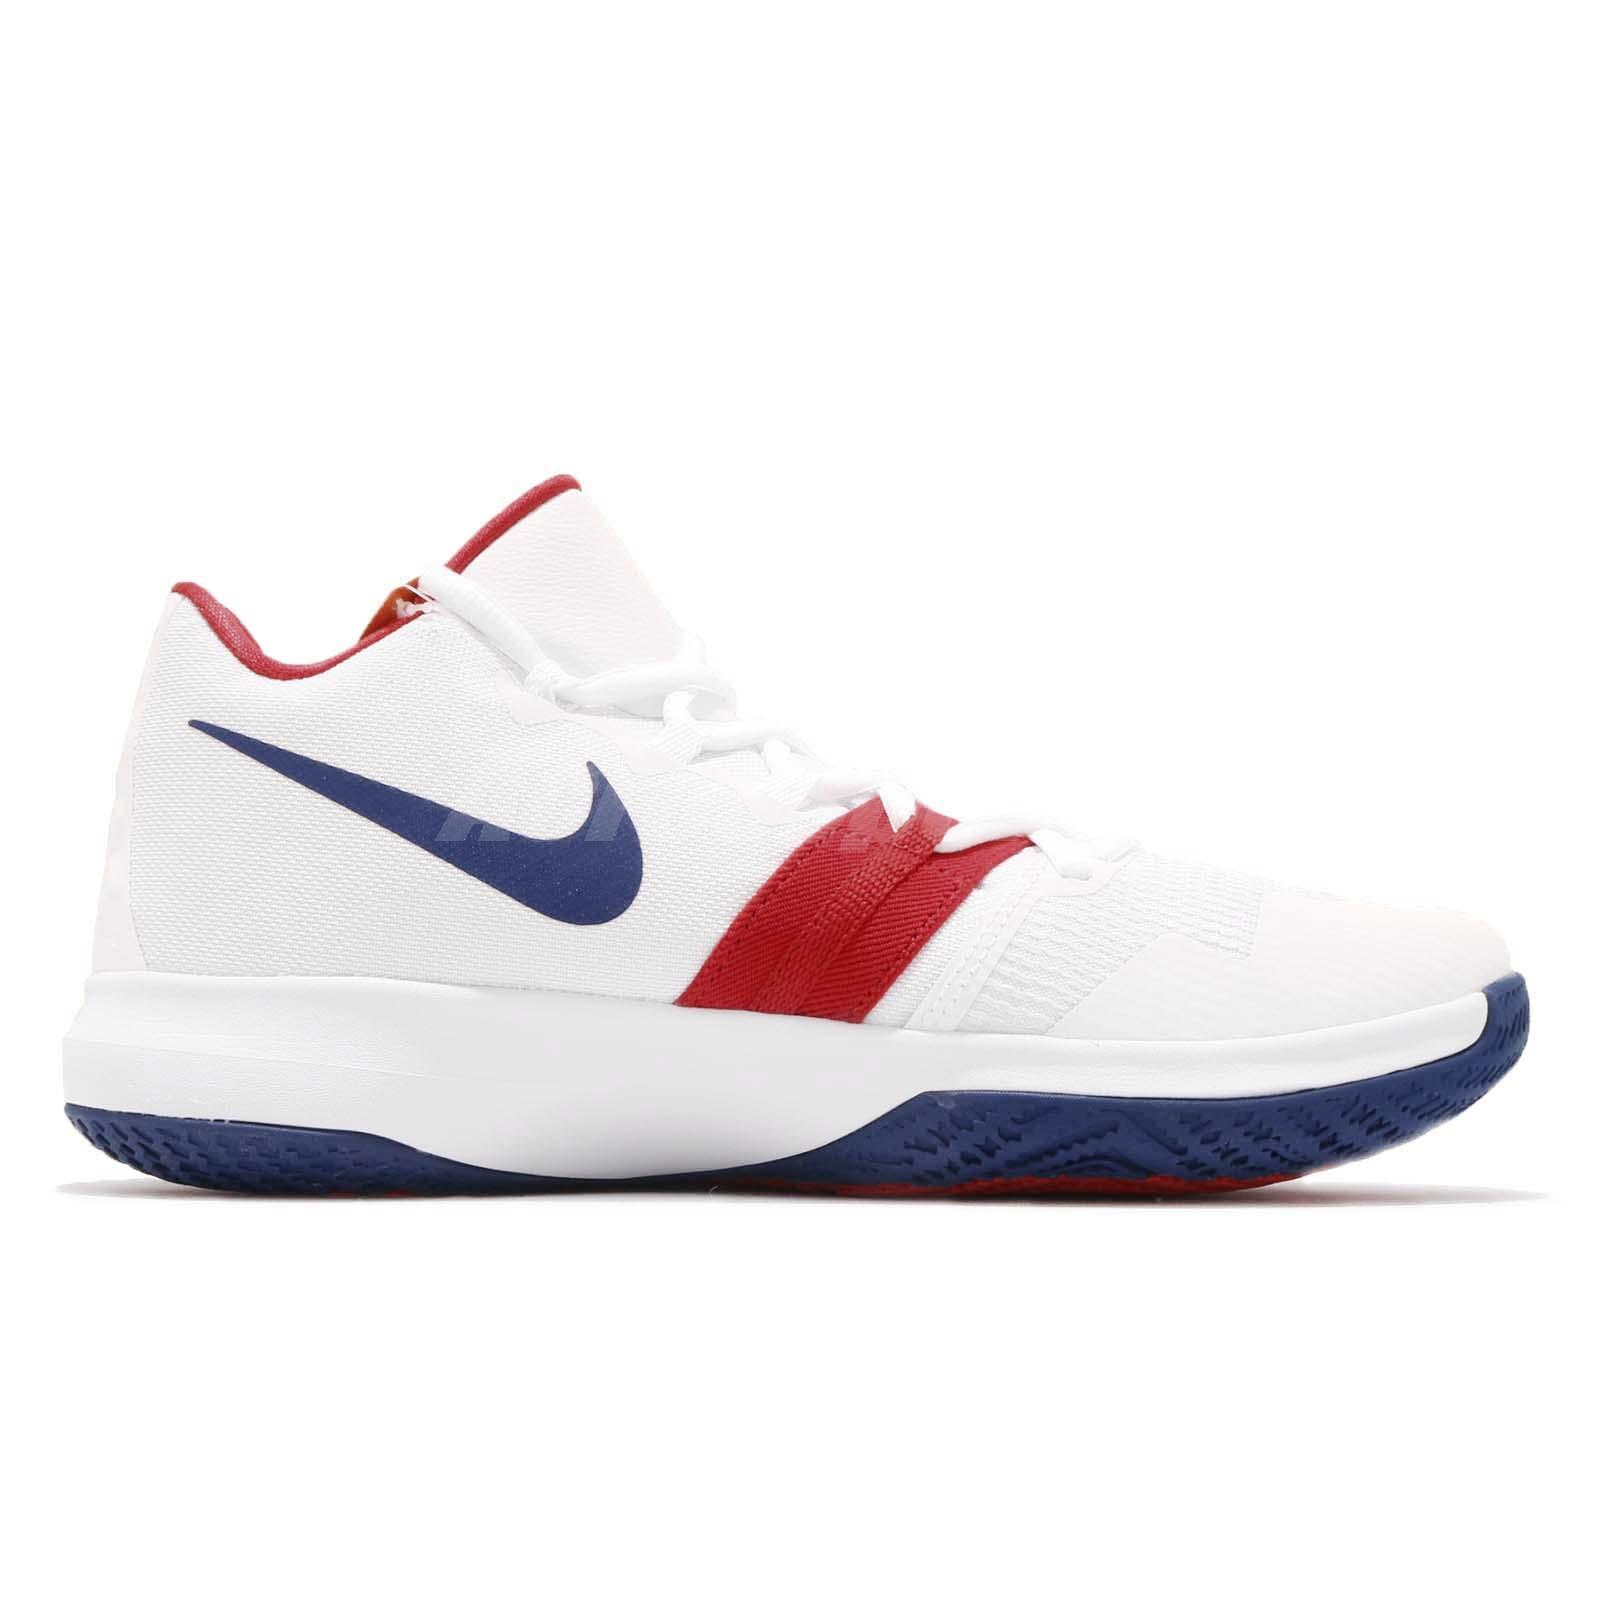 7ddf7eb4bad1 Nike Kyrie Flytrap EP Irving White Blue Red Men Basketball Shoes ...